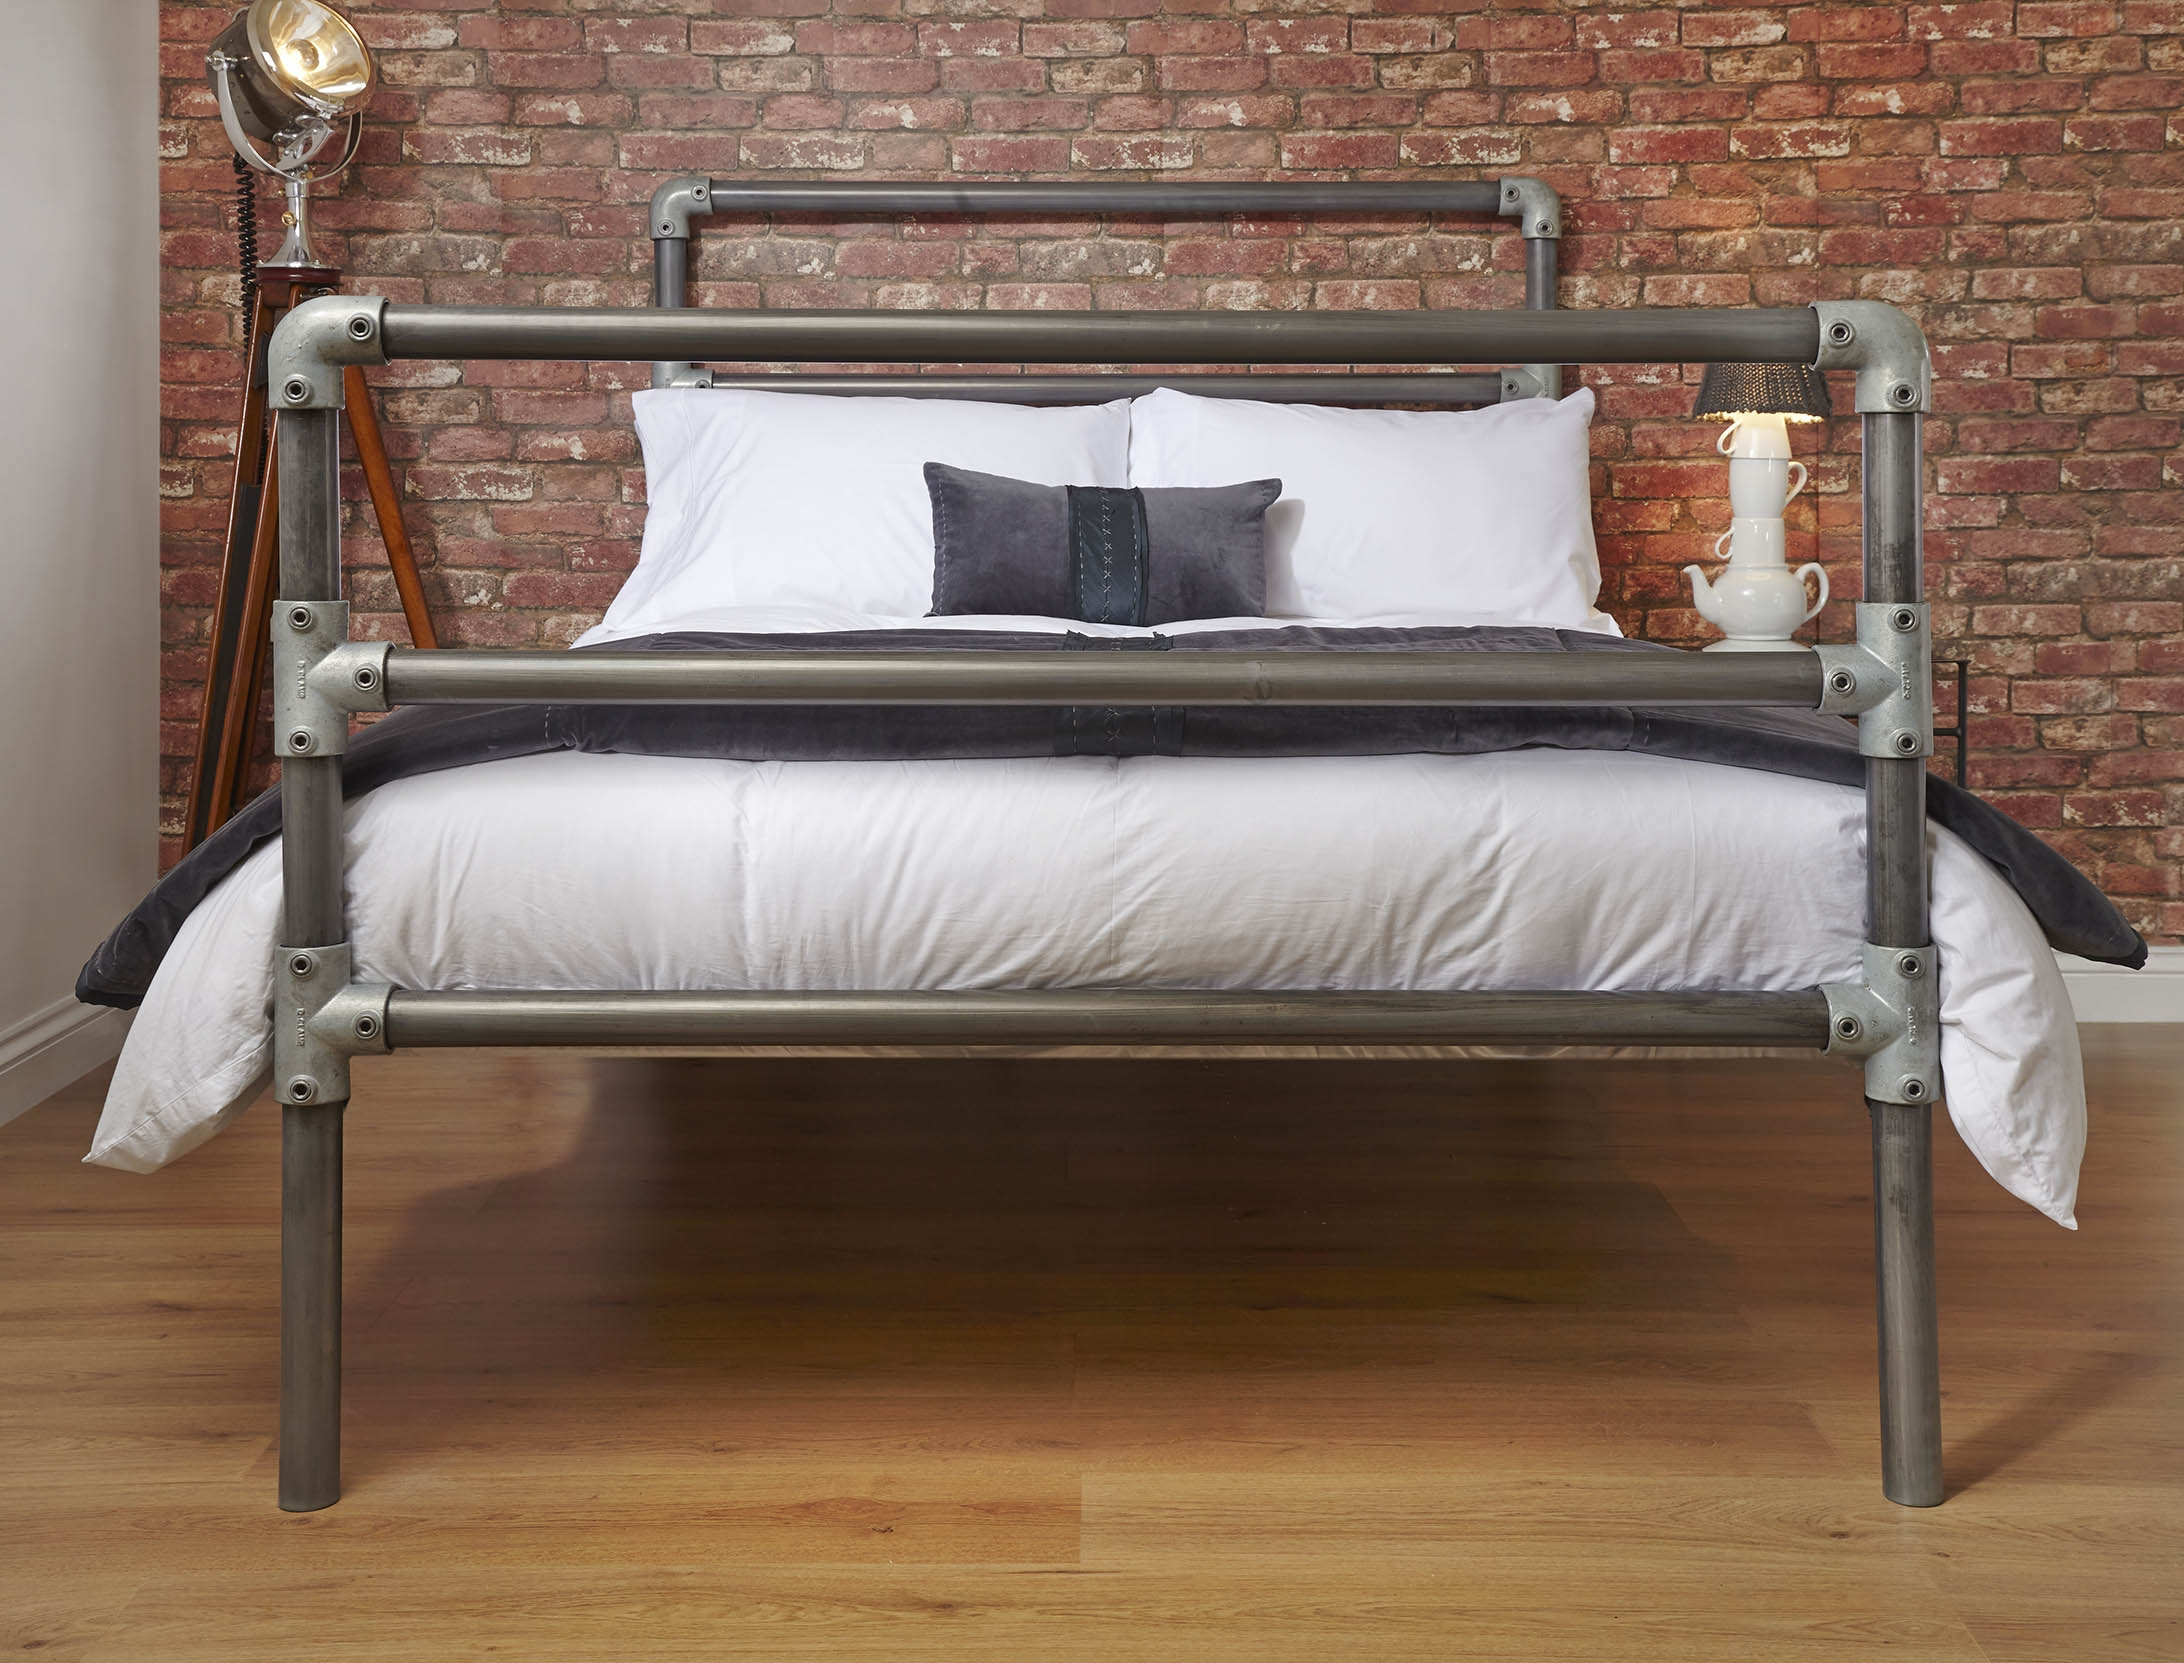 Cast Iron Pipe Bed Frame